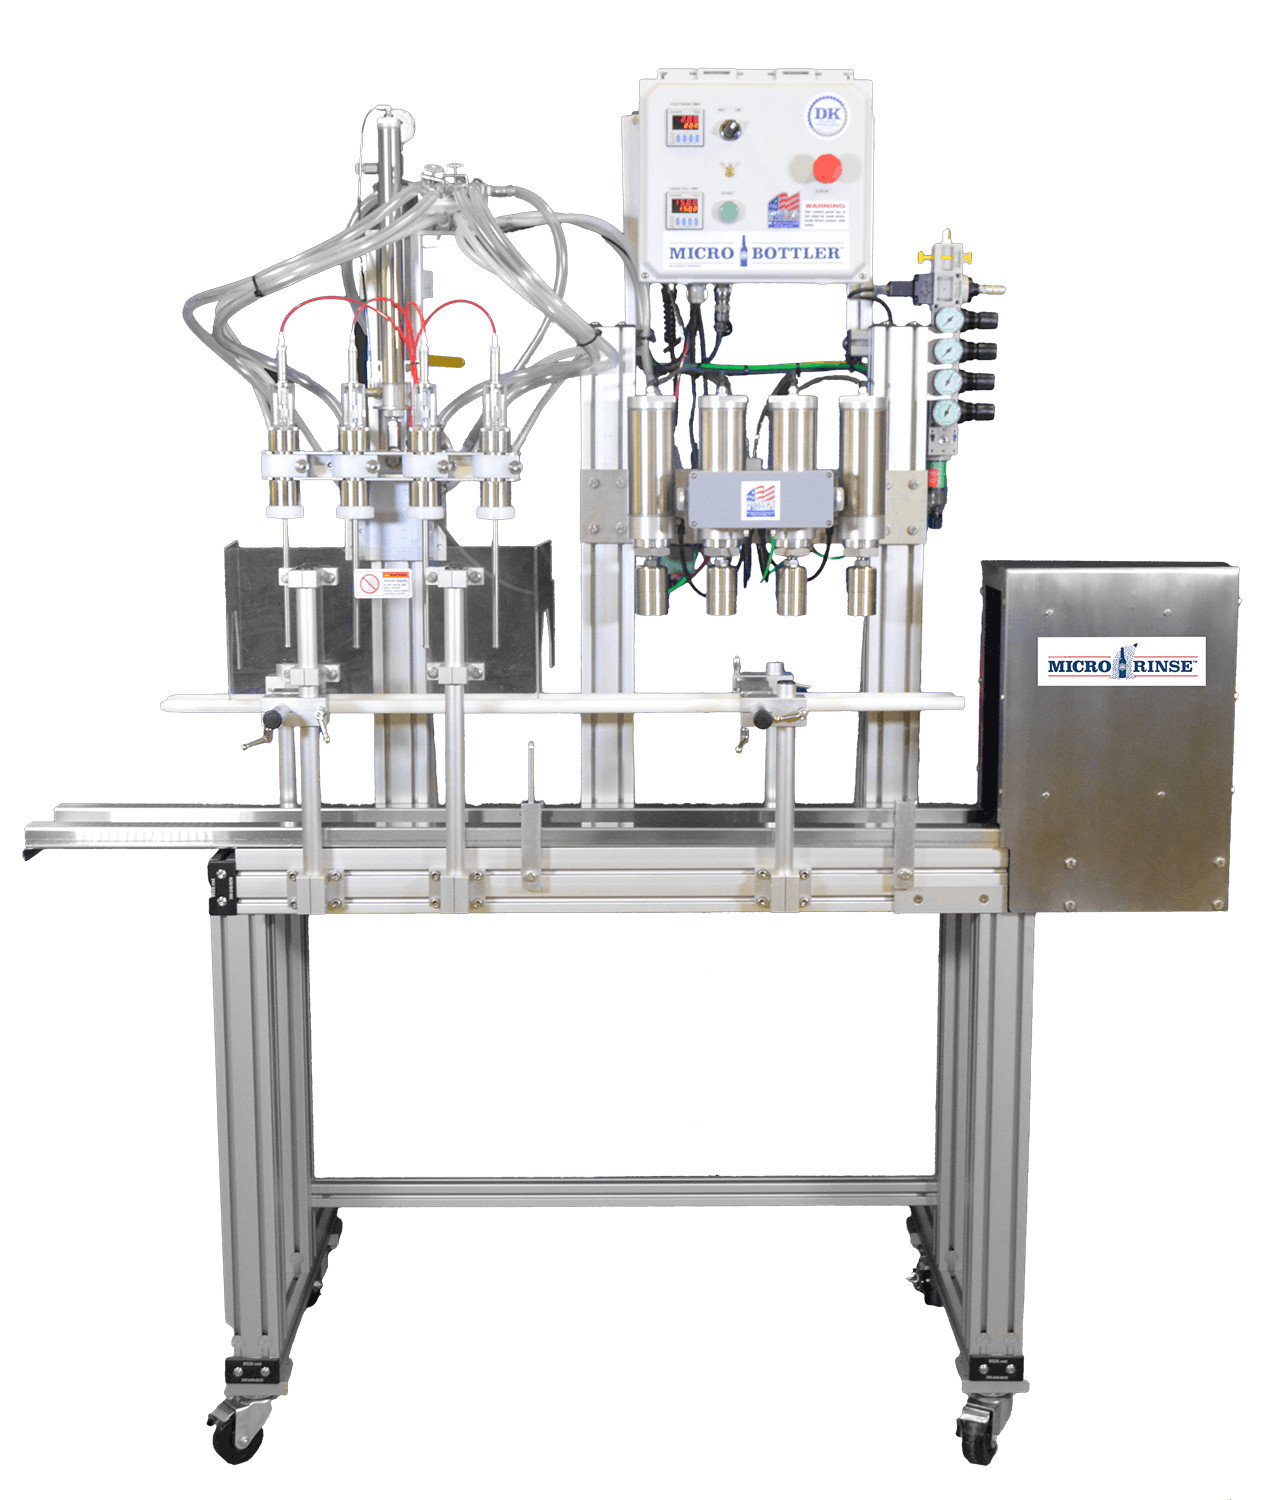 MicroBottler Semi-Automatic Bottling Line - sold by DK Advanced Technologies